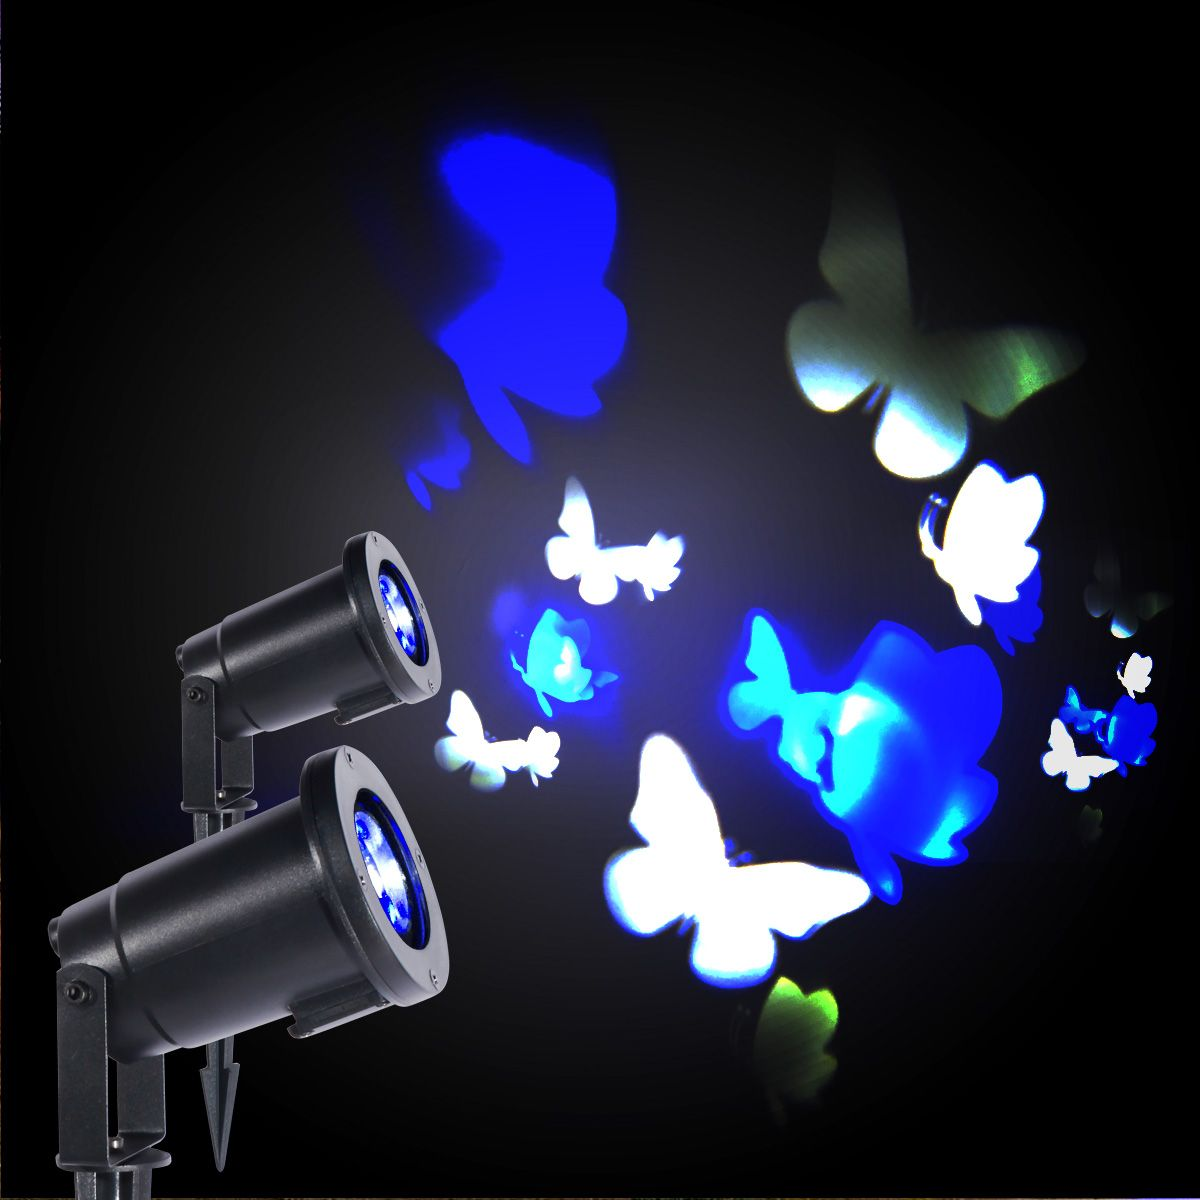 Landscape Projector Light The Lamp Project Moving Blue And White Butterflies Images On The Wall Create A Vital Wor Landscape Spotlights Lamp Light Project